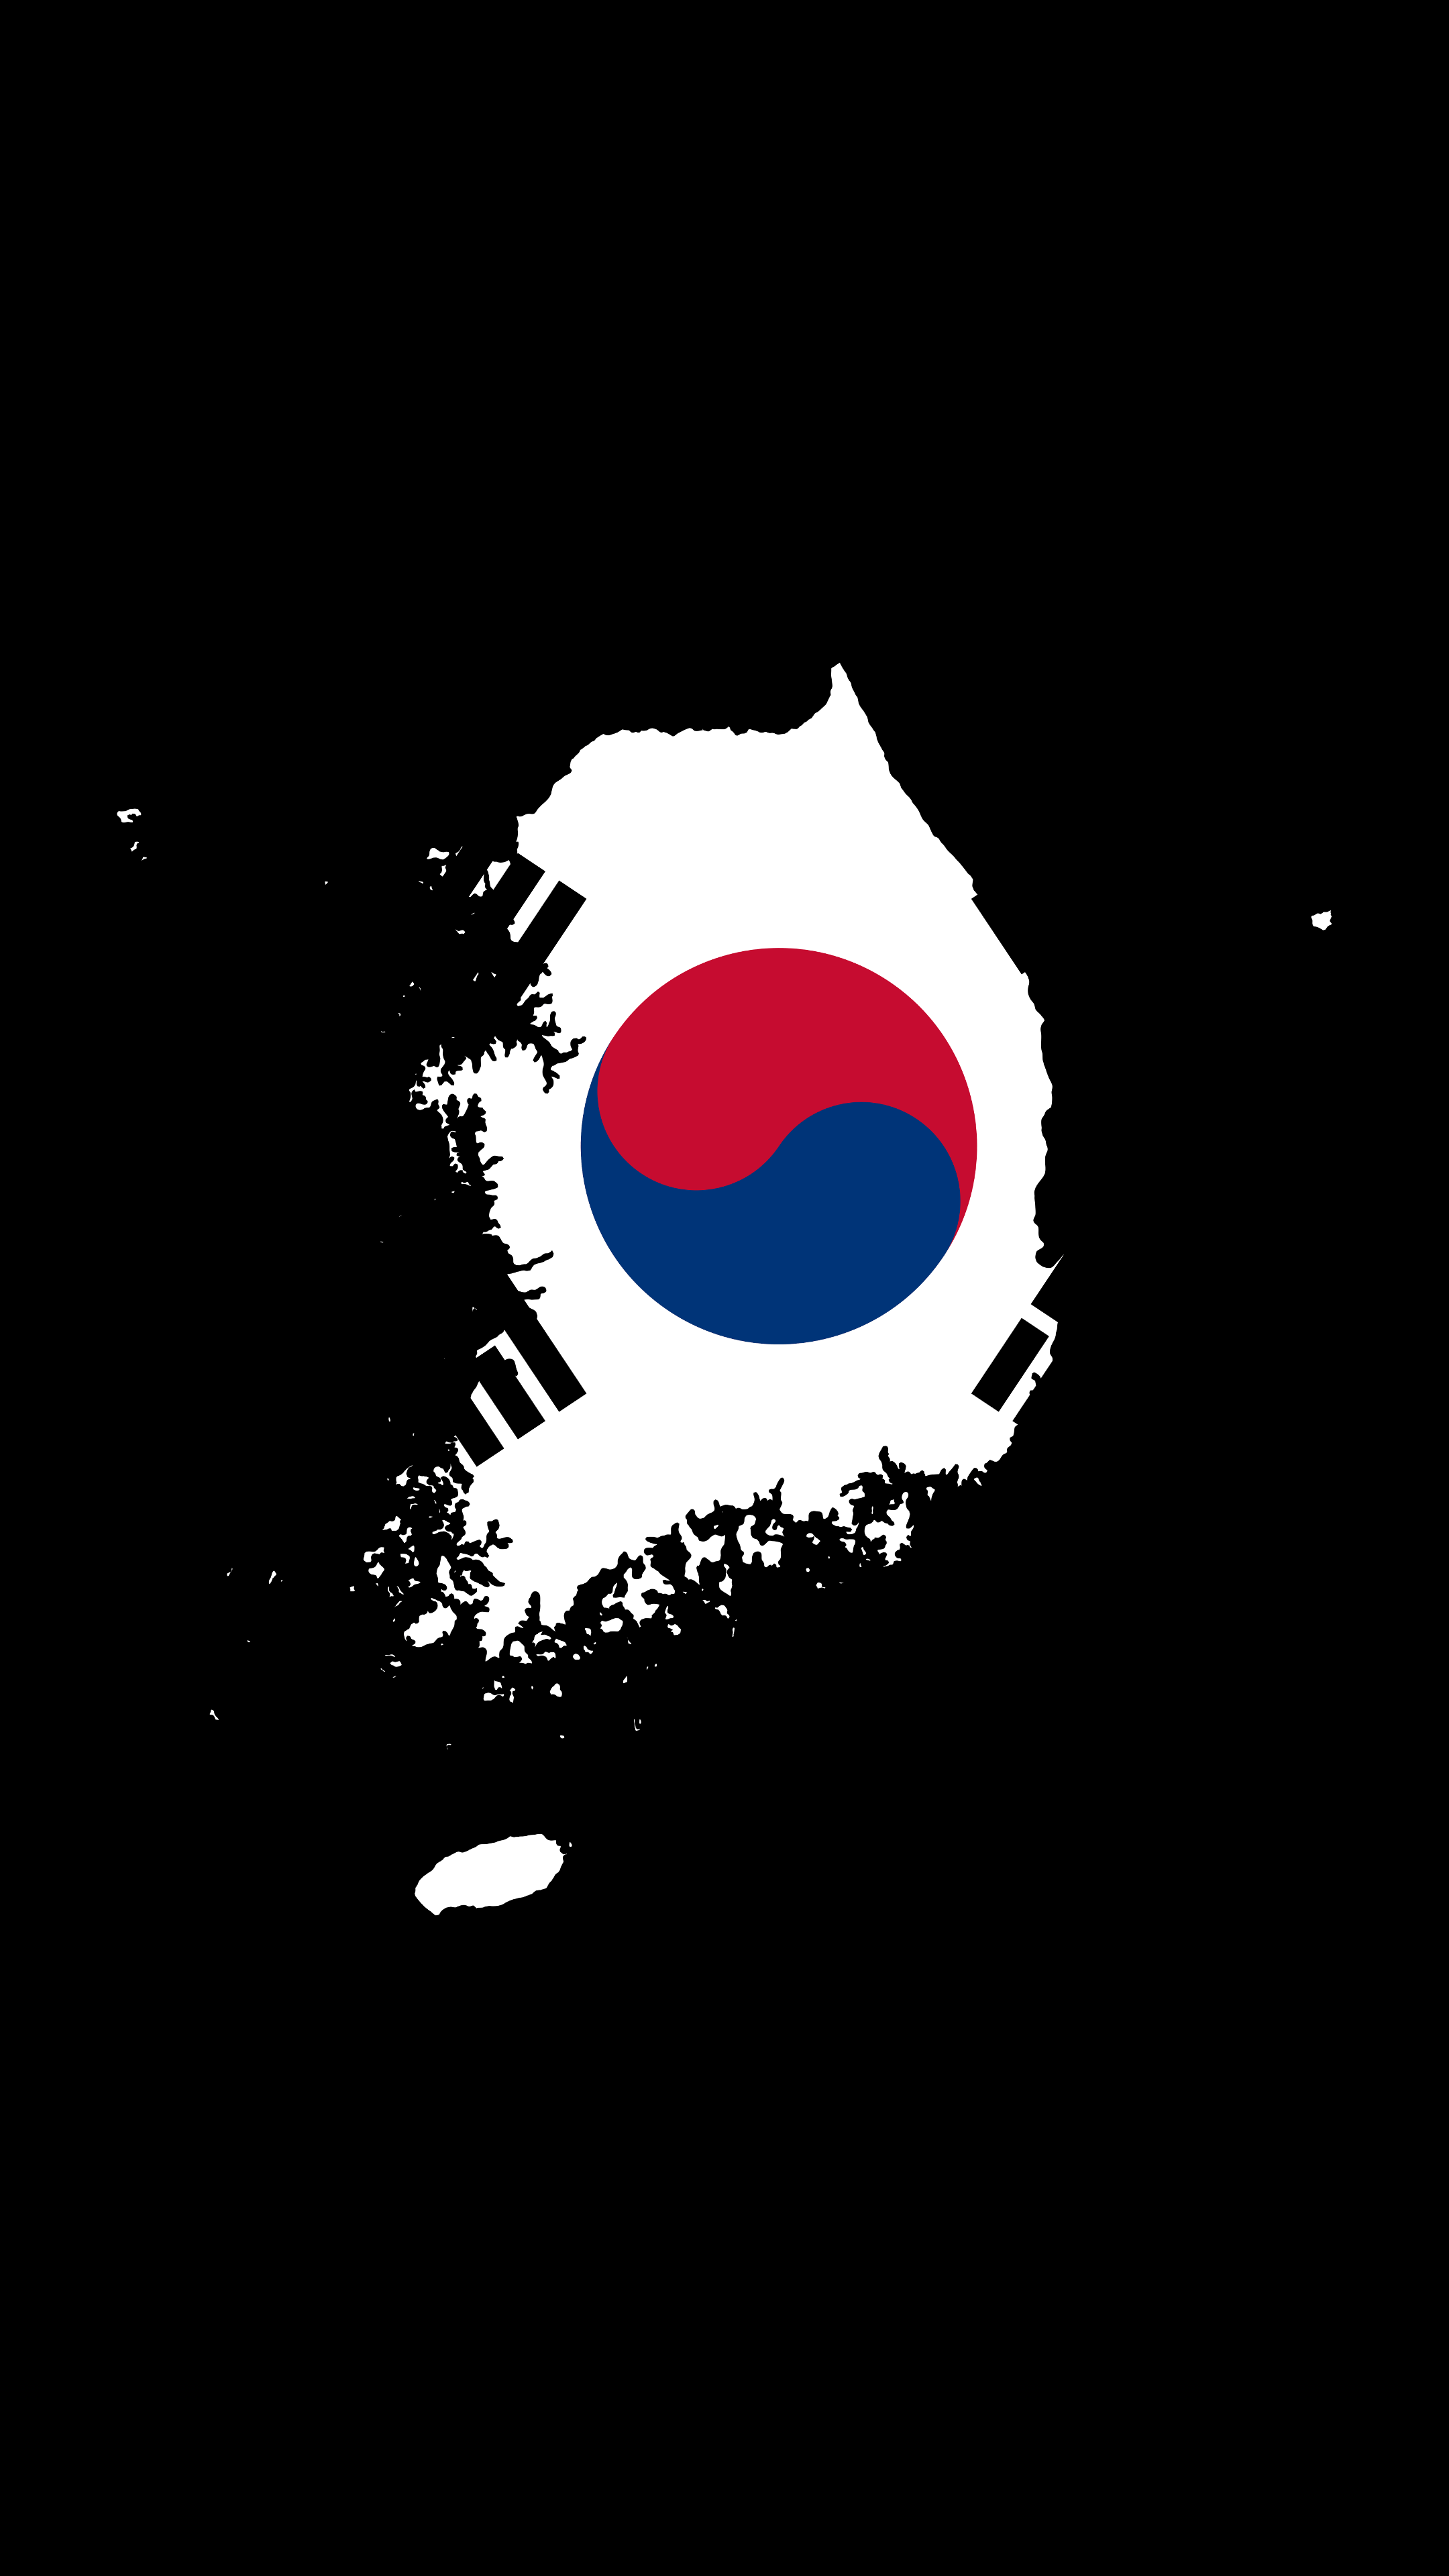 2160x3840 South Korea - Flag and Country - Fulfilled Request [2160x3840 ...